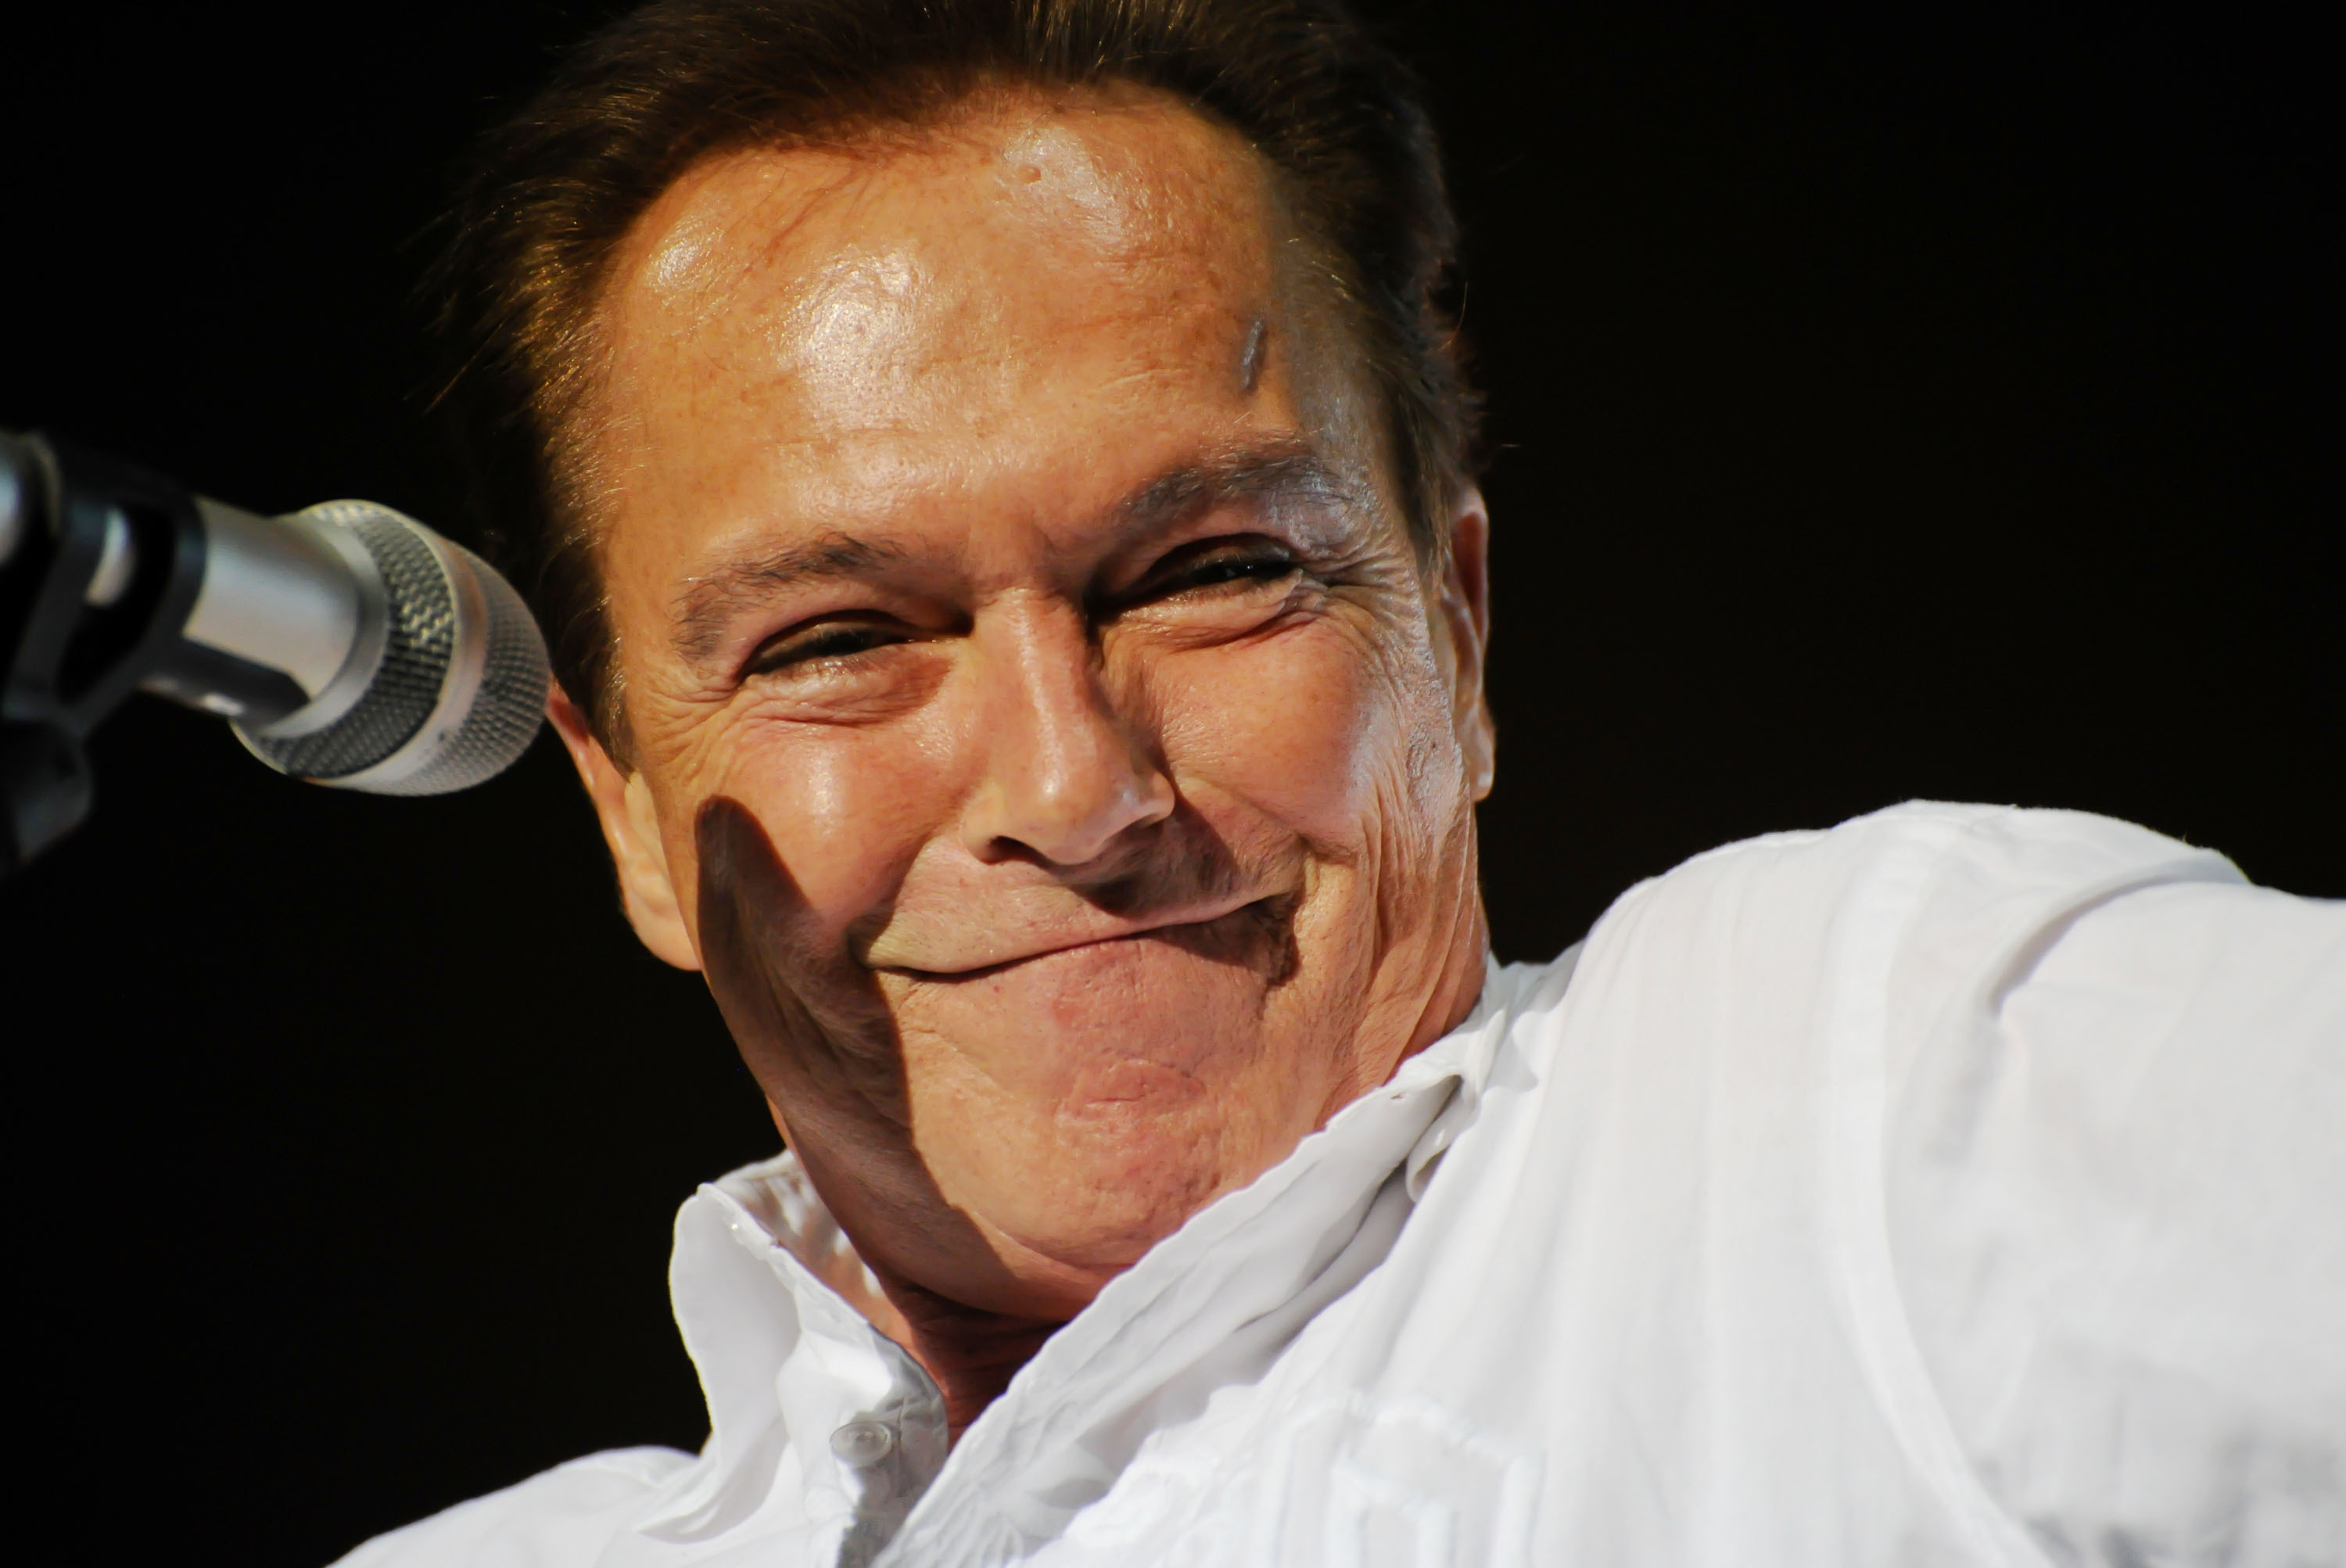 David Cassidy Once In A Lifetime at Birmingham LG Arena Birmingham, England - 09.11.12  Featuring: David Cassidy Where: Birmingham, United Kingdom When: 09 Nov 2012 Credit: Anthony Stanley/WENN